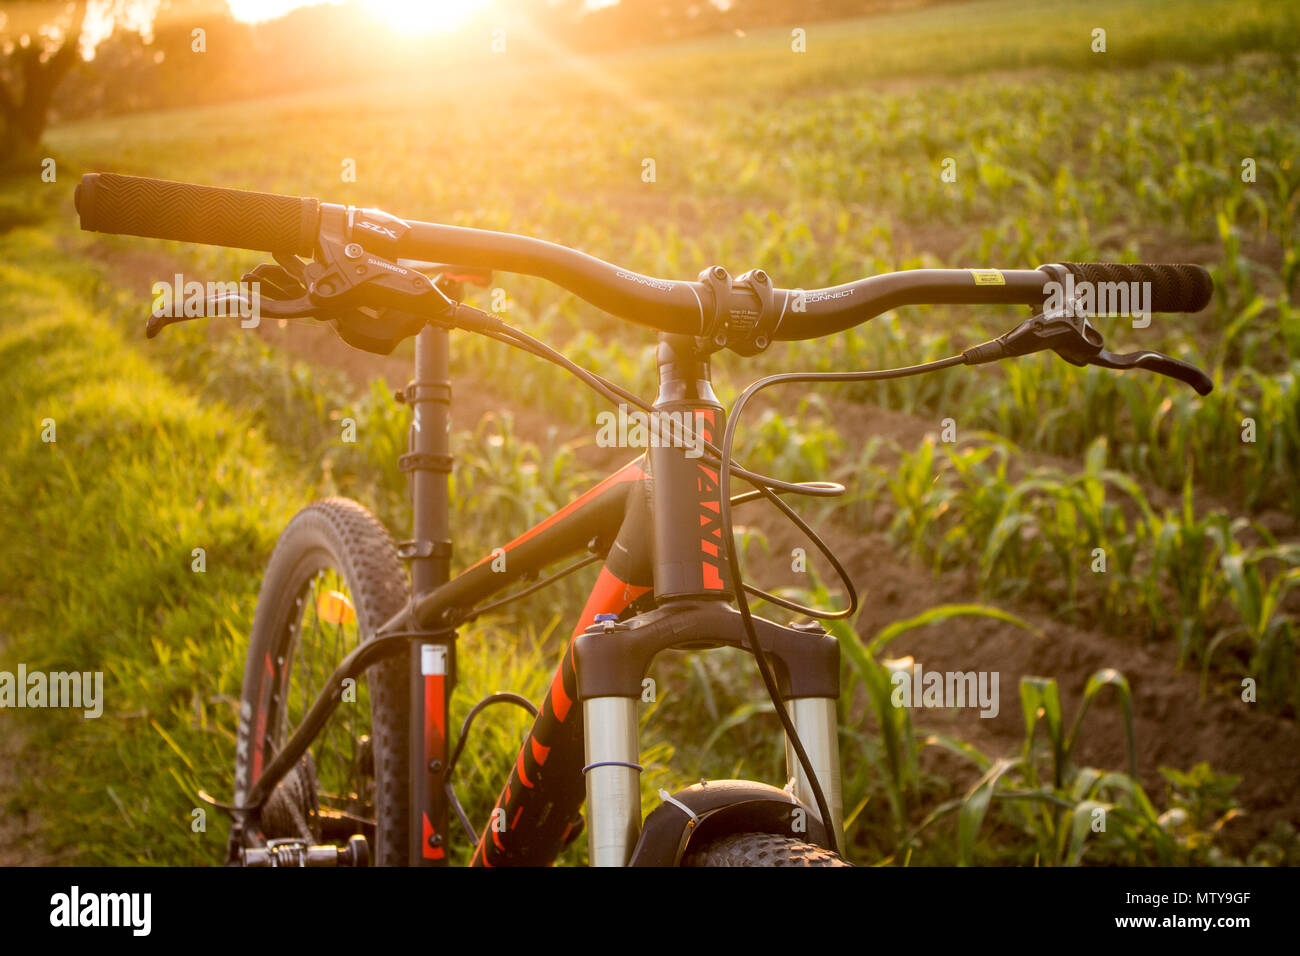 Tlaxcala, Mexico - May 27.2018. Giant and shimano are two of the largest manufacturing companies in the bicycle manufacturer industry - Stock Image